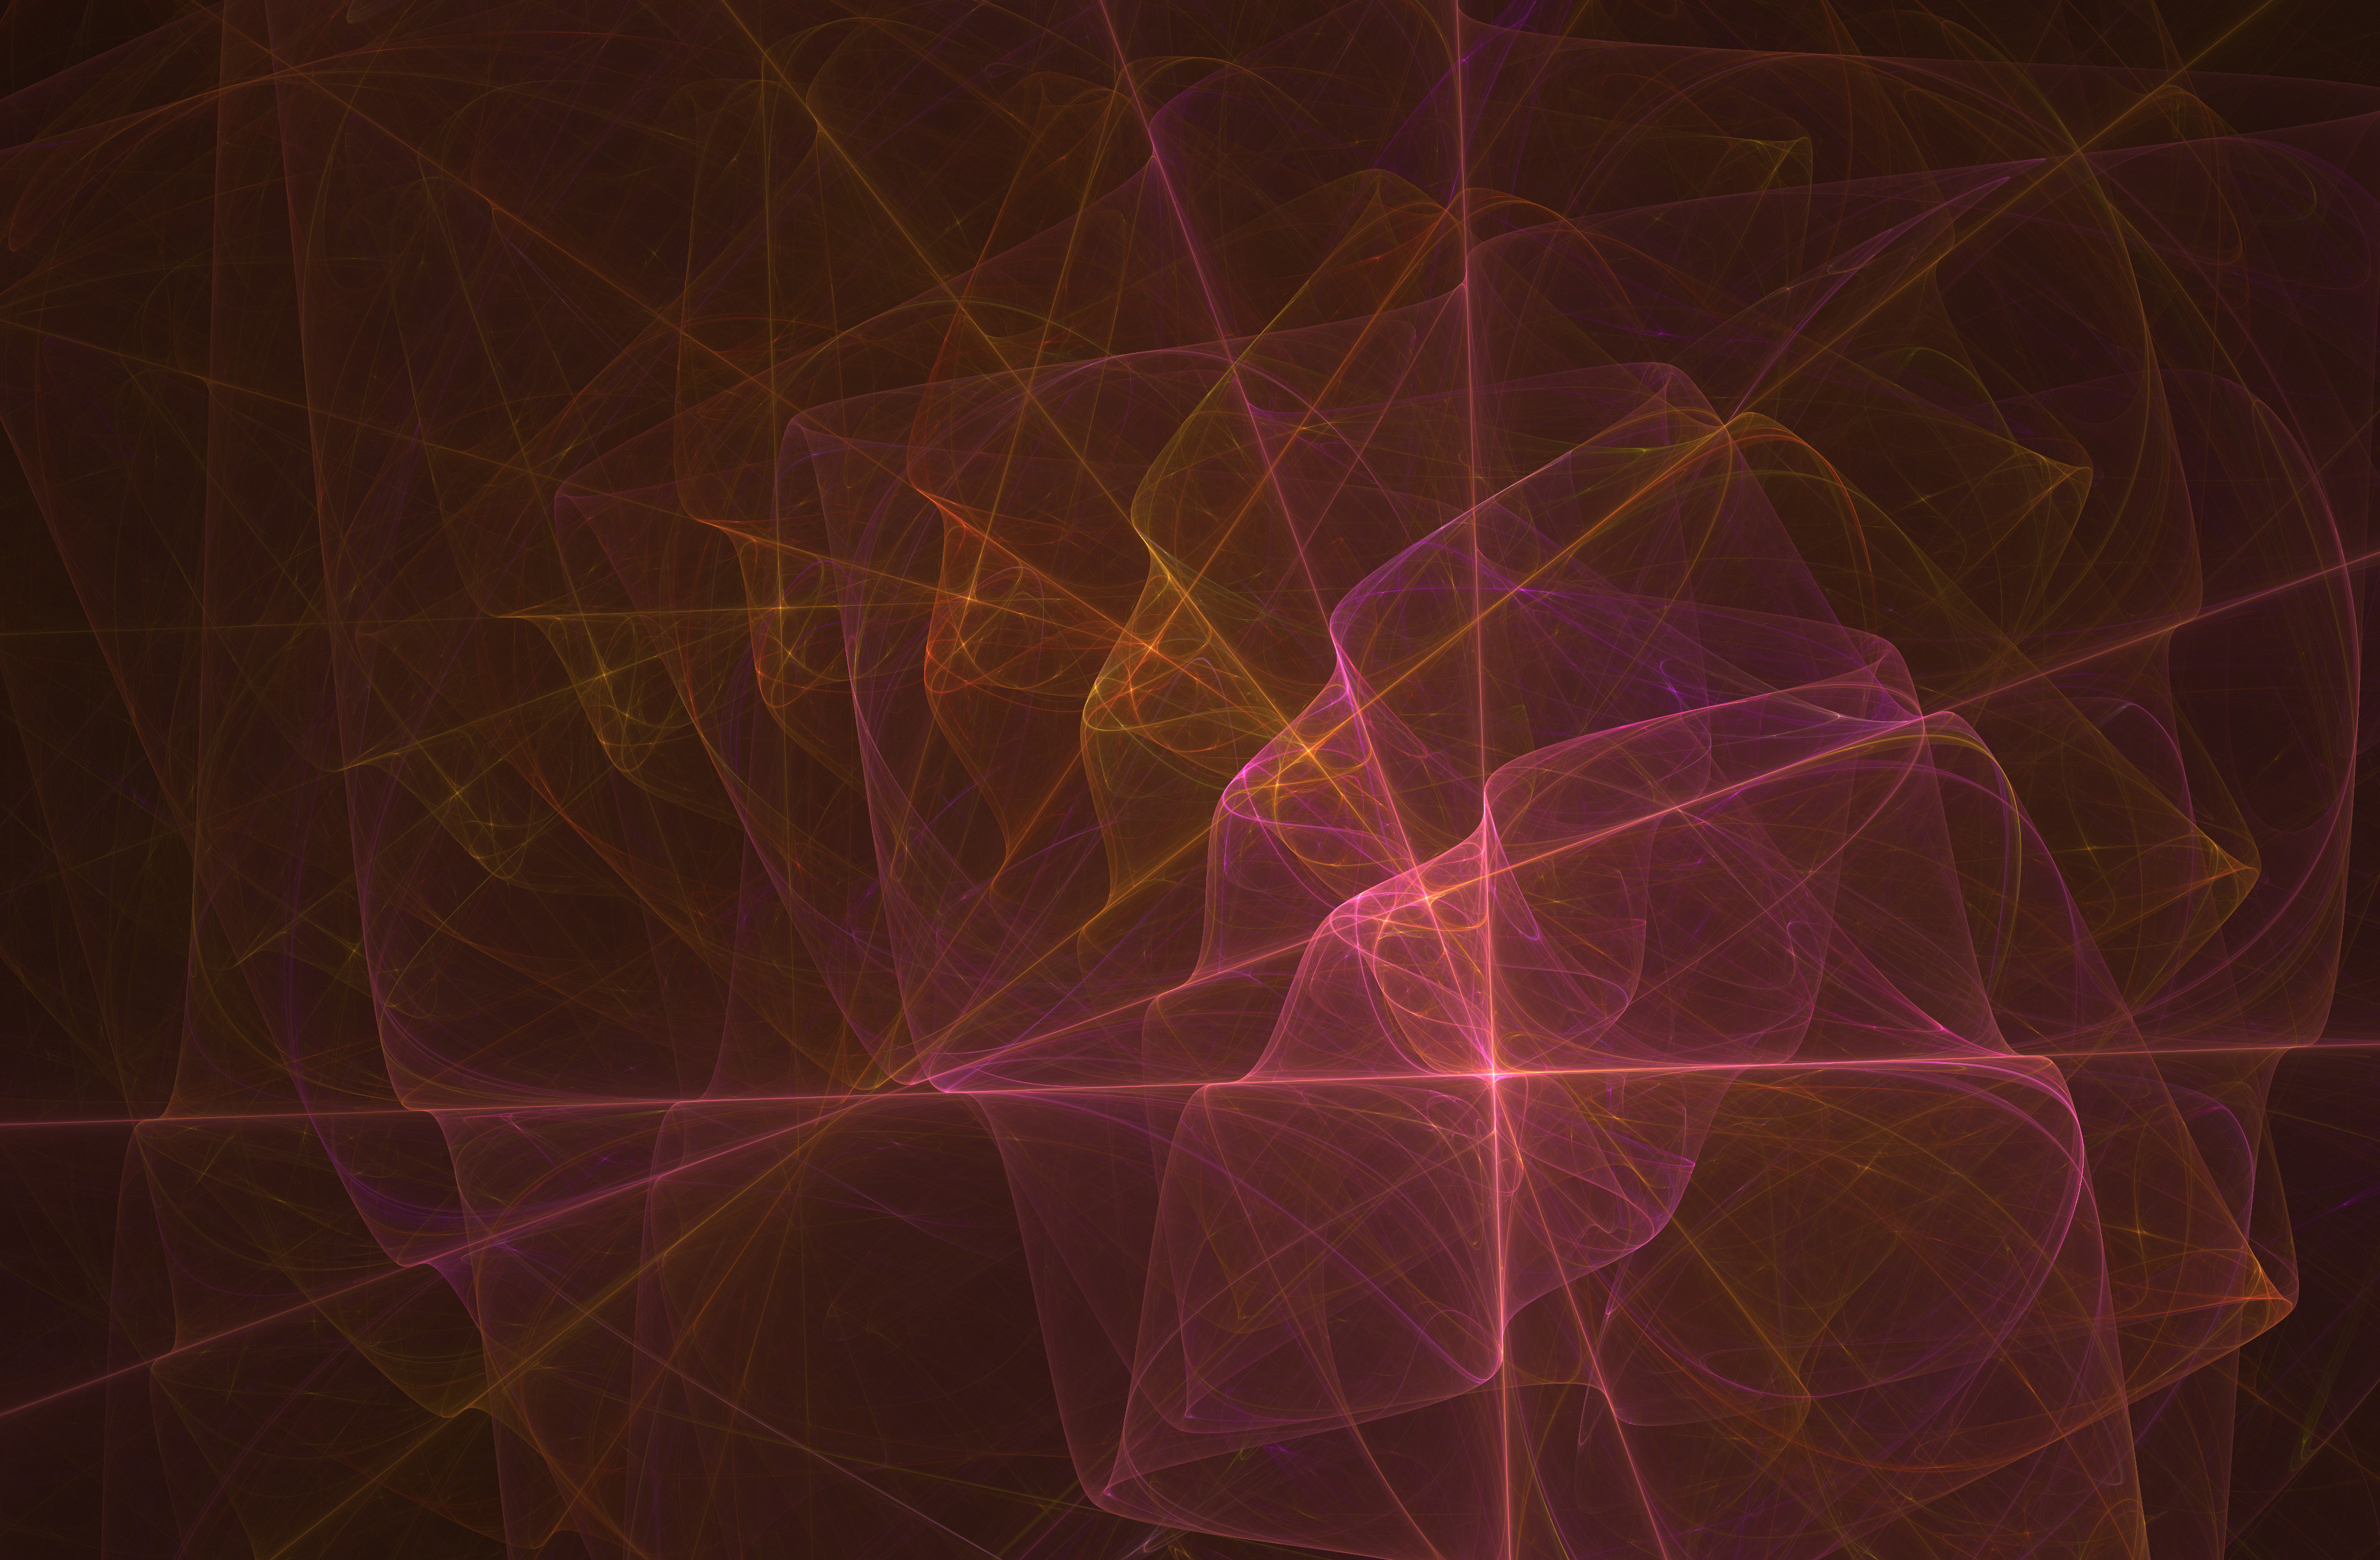 fractal image with rotating repeating shadows in pink and orange